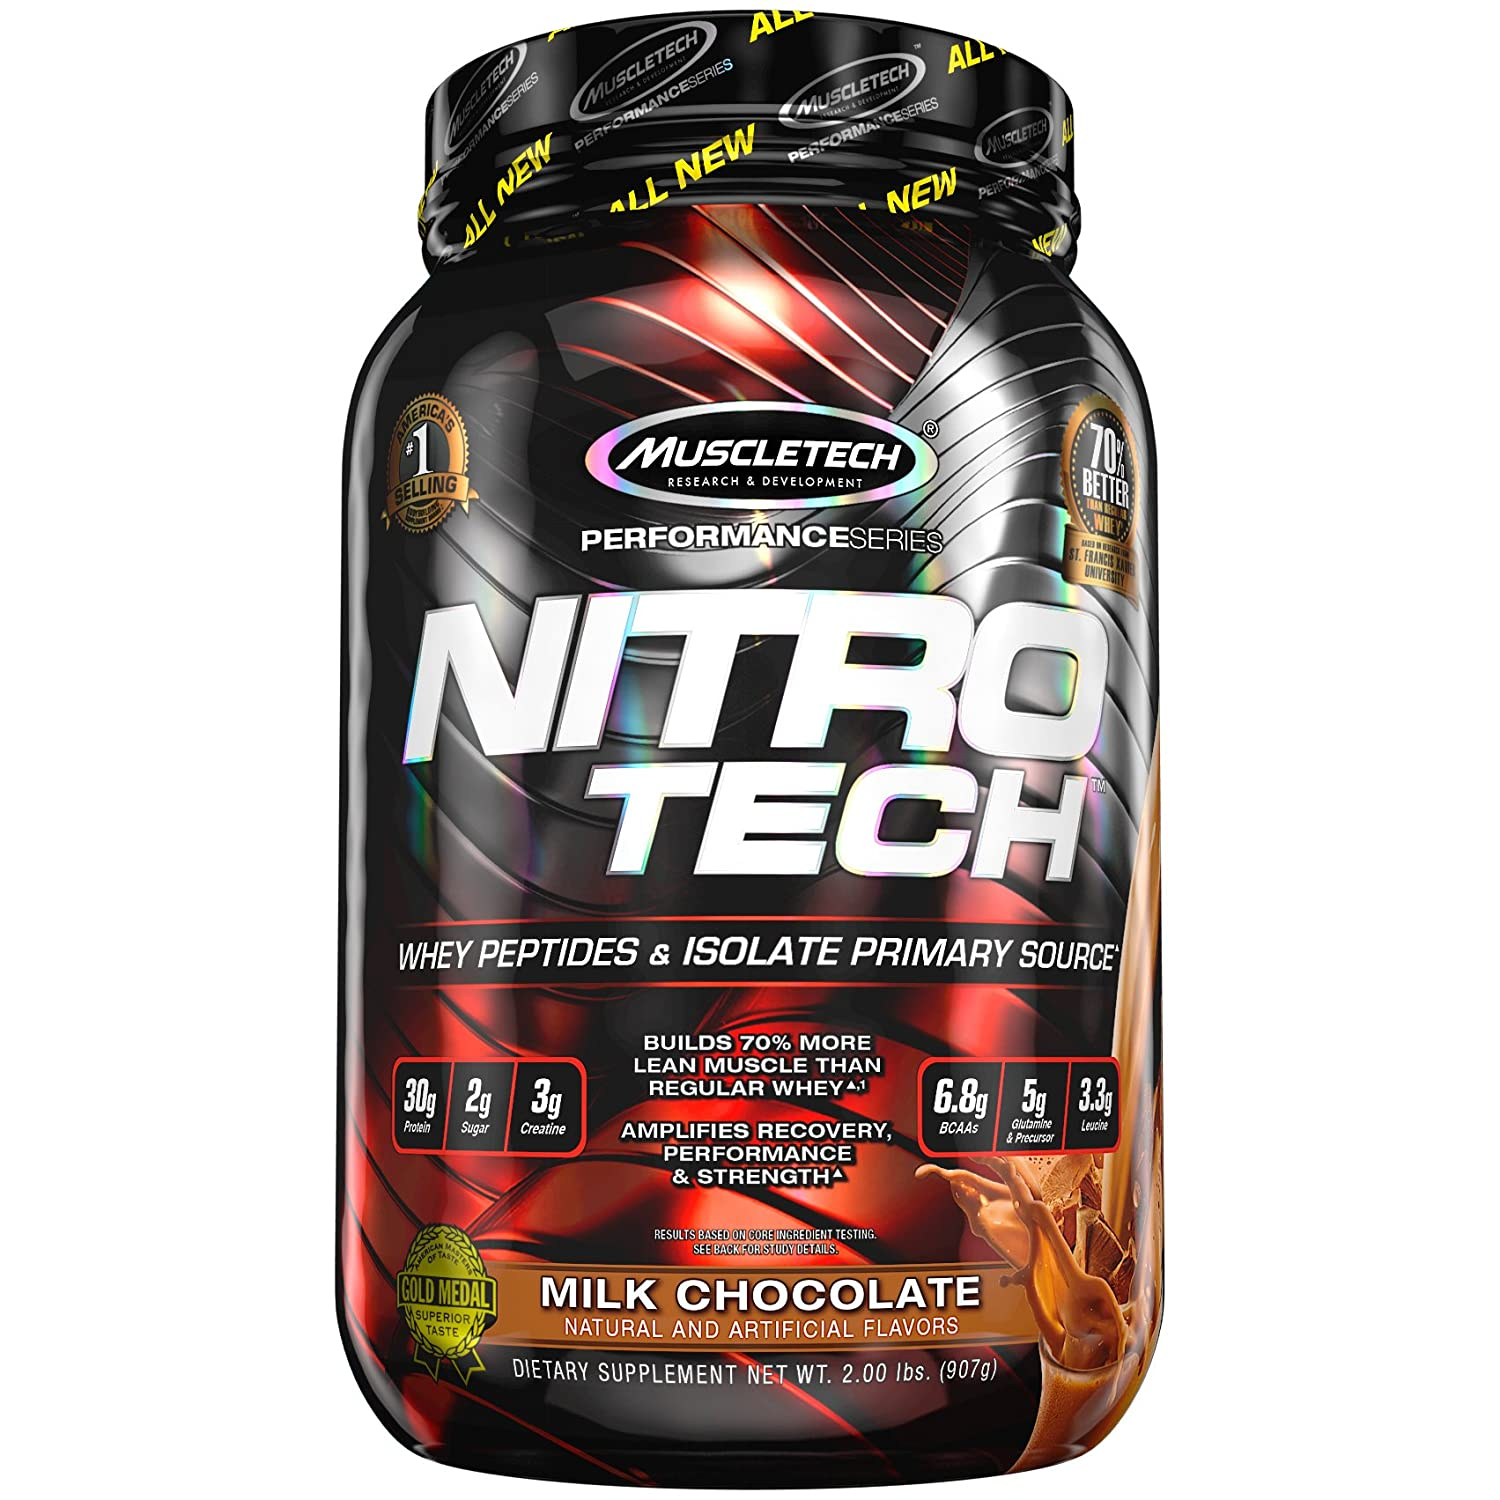 MuscleTech NitroTech Pure Whey Protein, 100% Whey Protein Powder, Whey Isolate and Whey Peptides, Milk Chocolate, 2 Pound